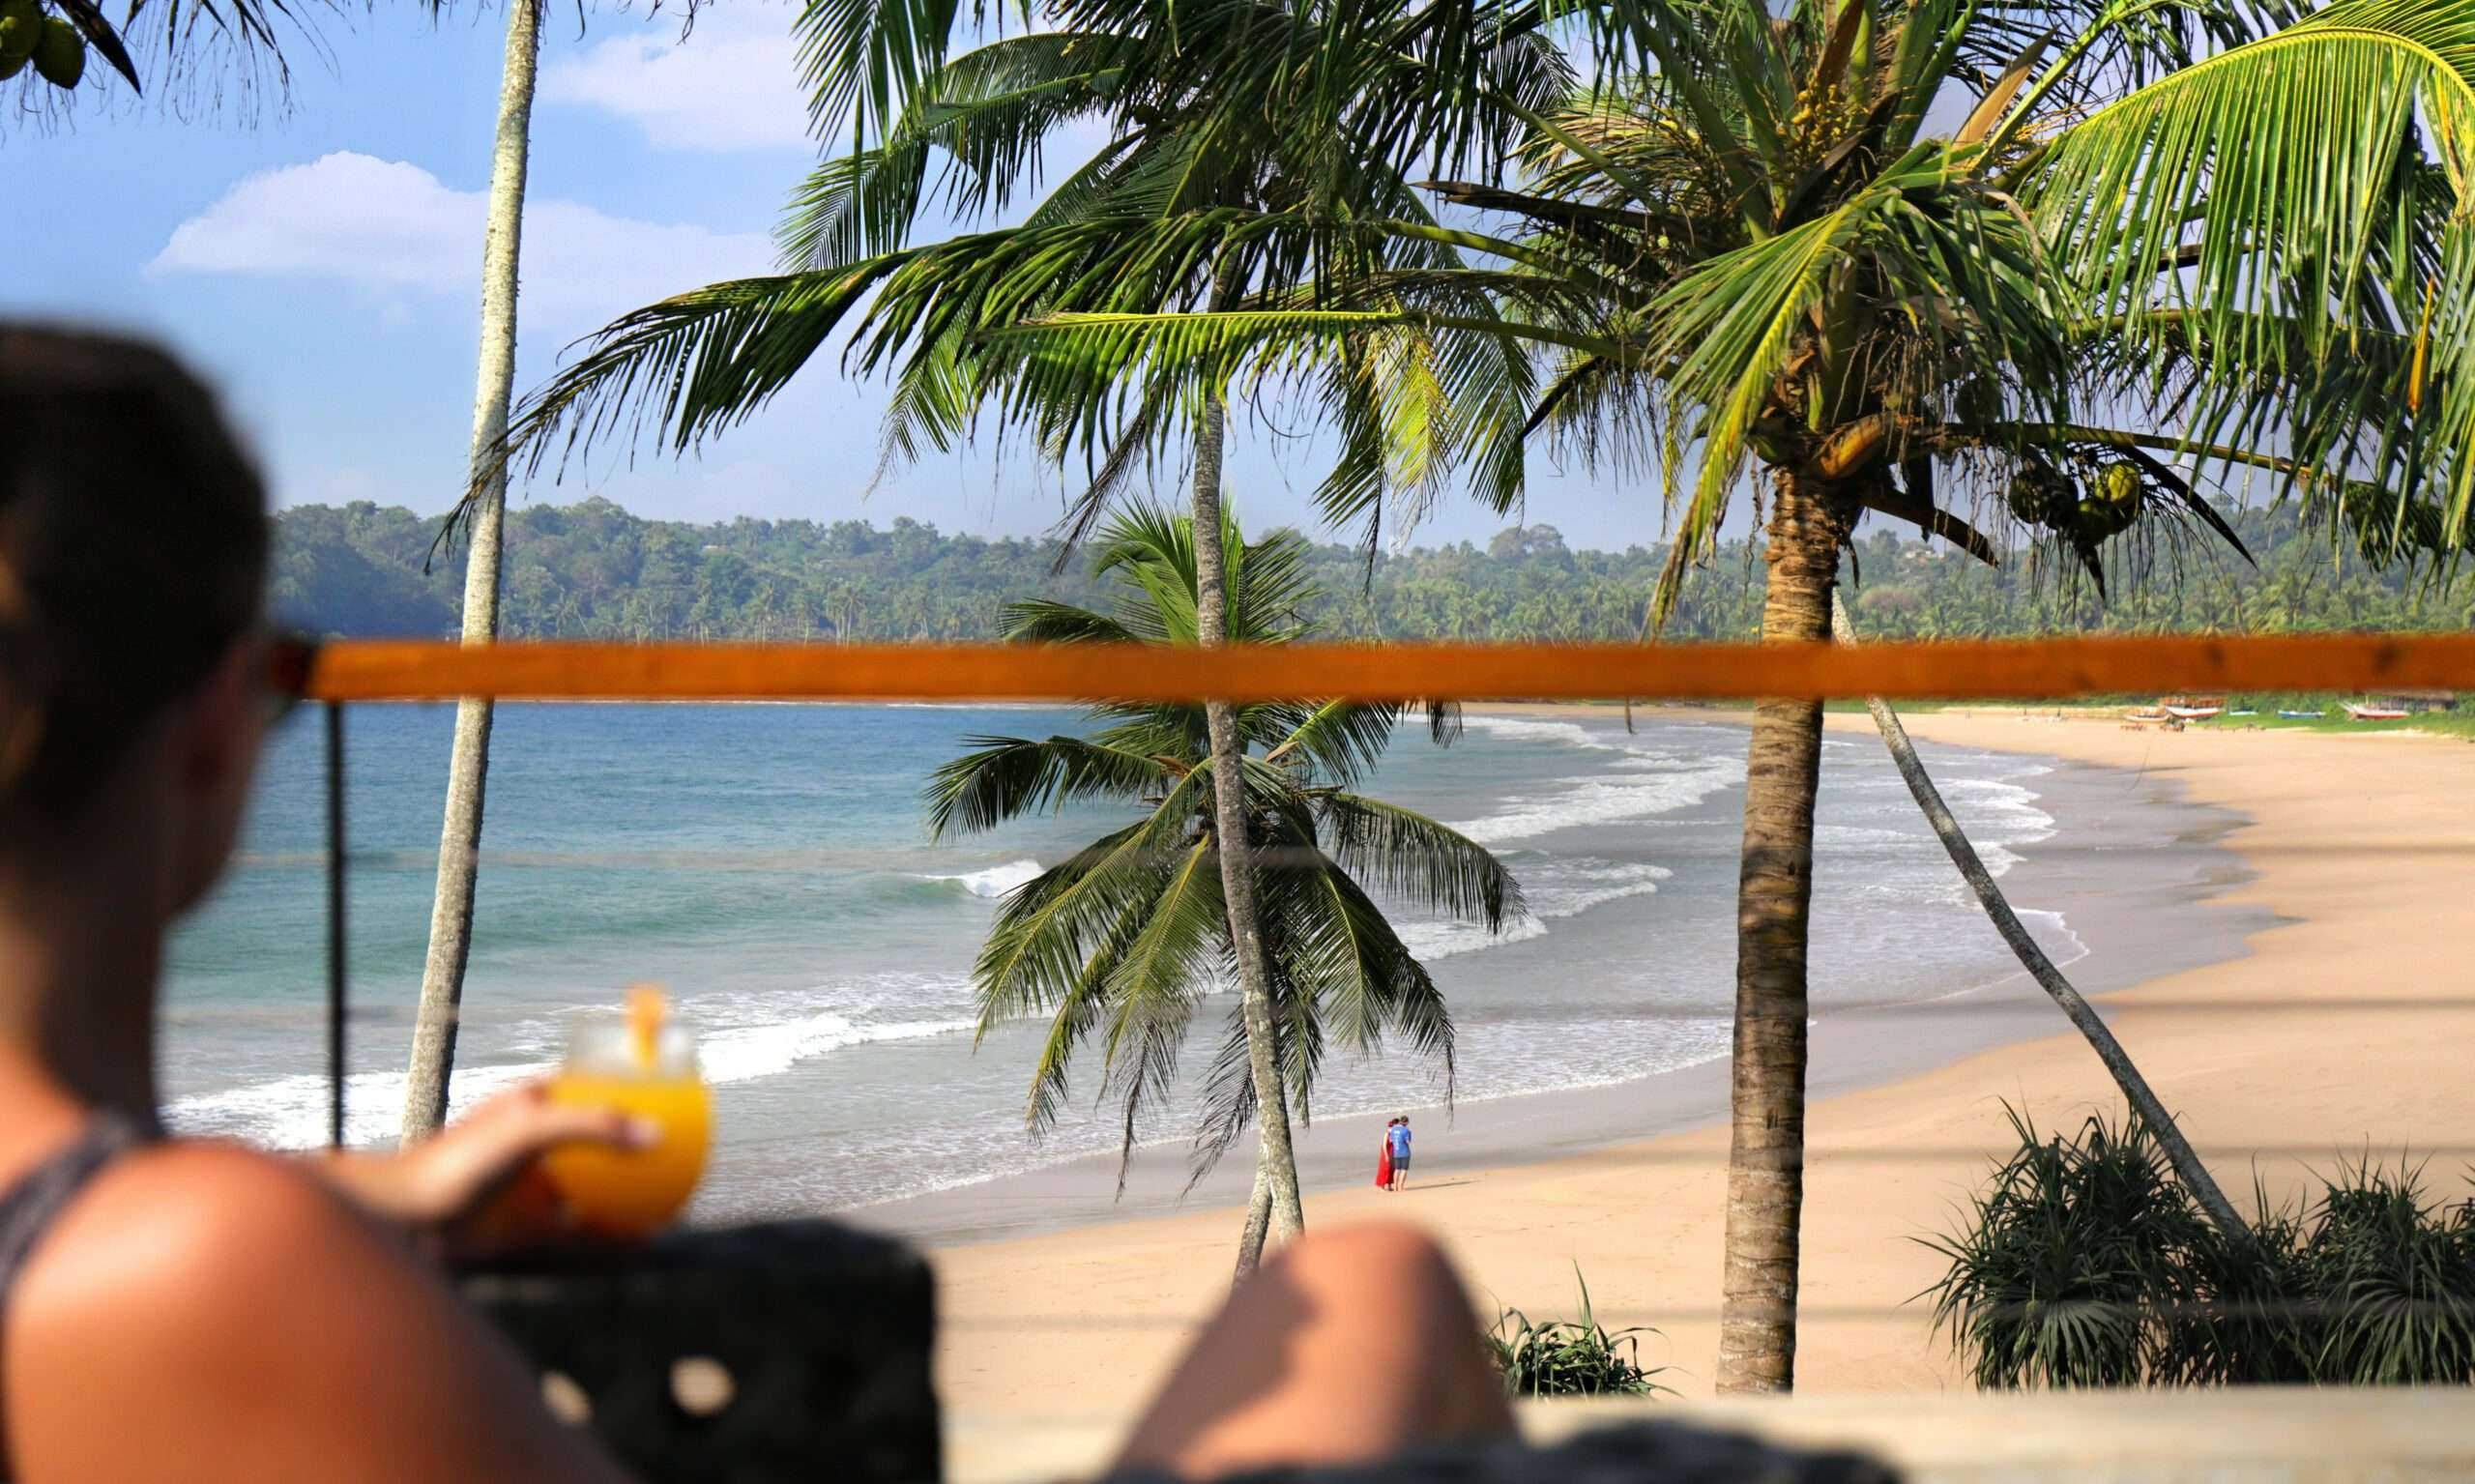 Beach and ocean views from Talalla House in Sri Lanka